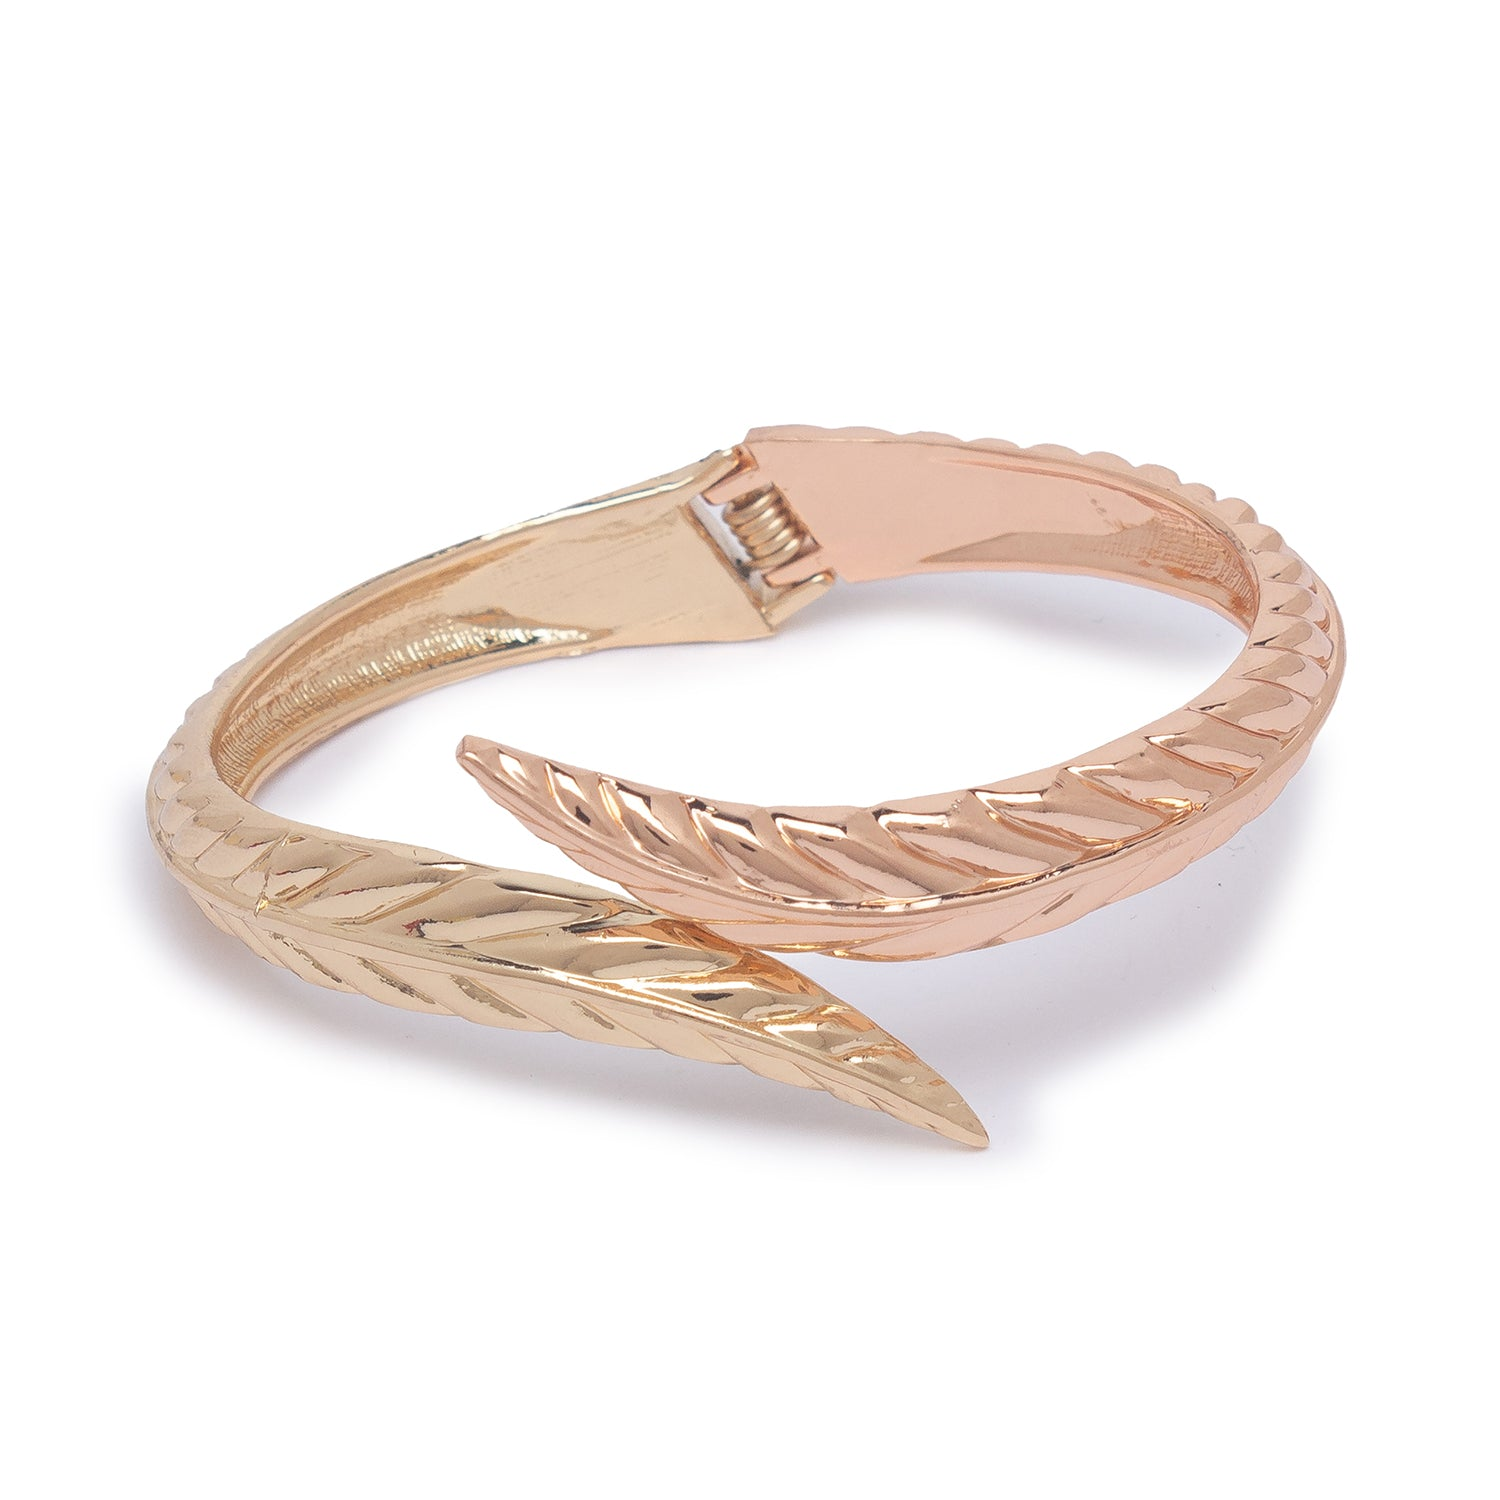 Globus Gold and Rose Gold Cuff-1